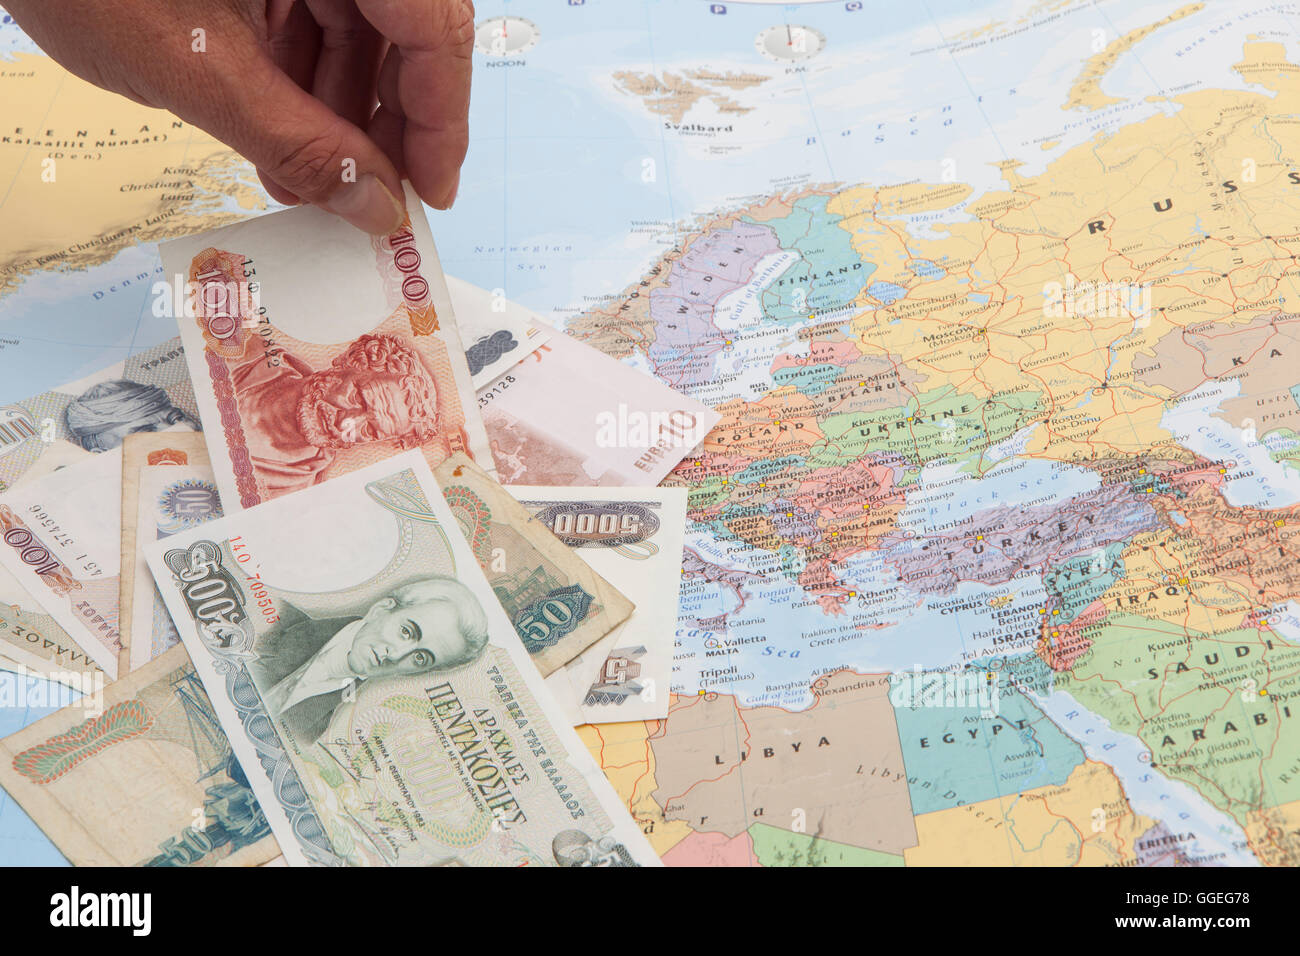 greek drachmas and euro banknote with a hand selection on a europe map - Stock Image